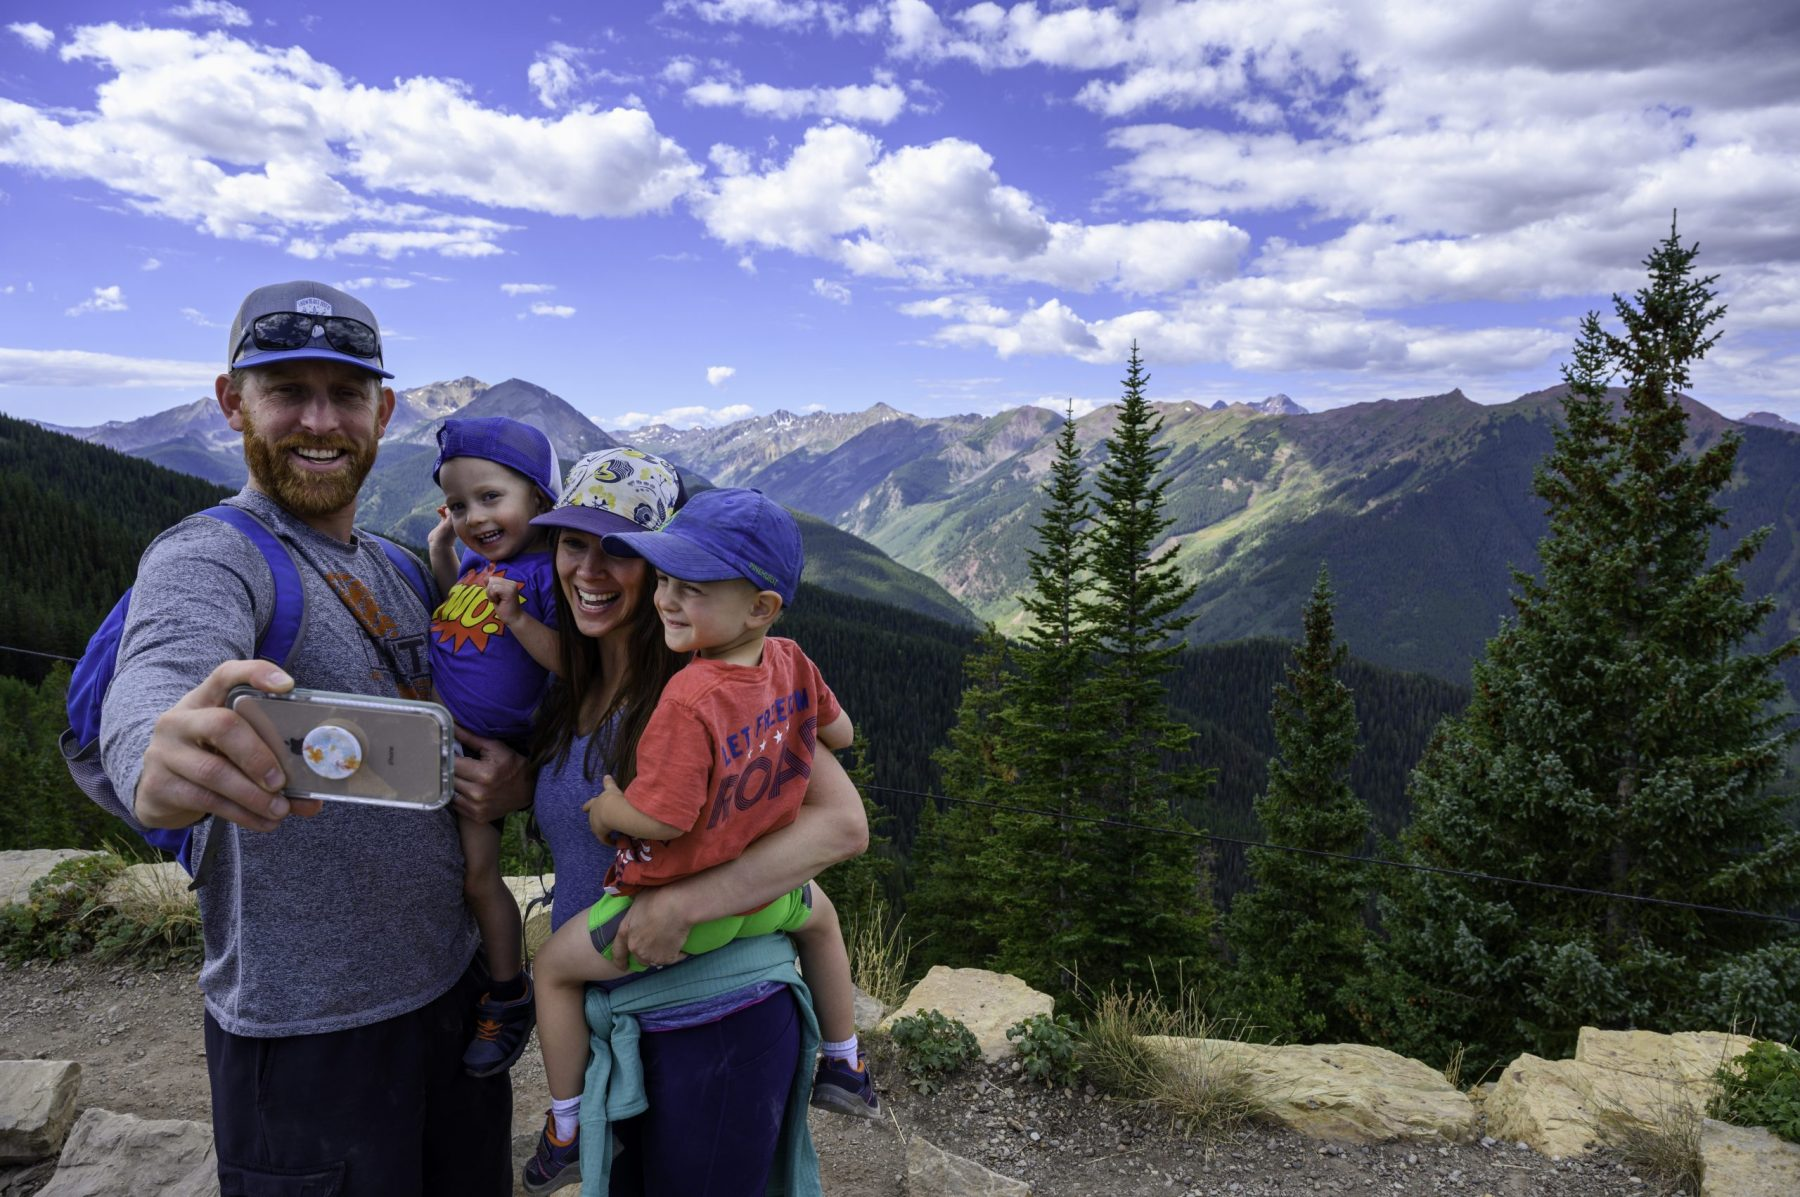 A family enjoying the outdoors in Aspen Mountain. Copyright: Aspen Skiing Company. Aspen Snowmass is opening for the Summer Season.